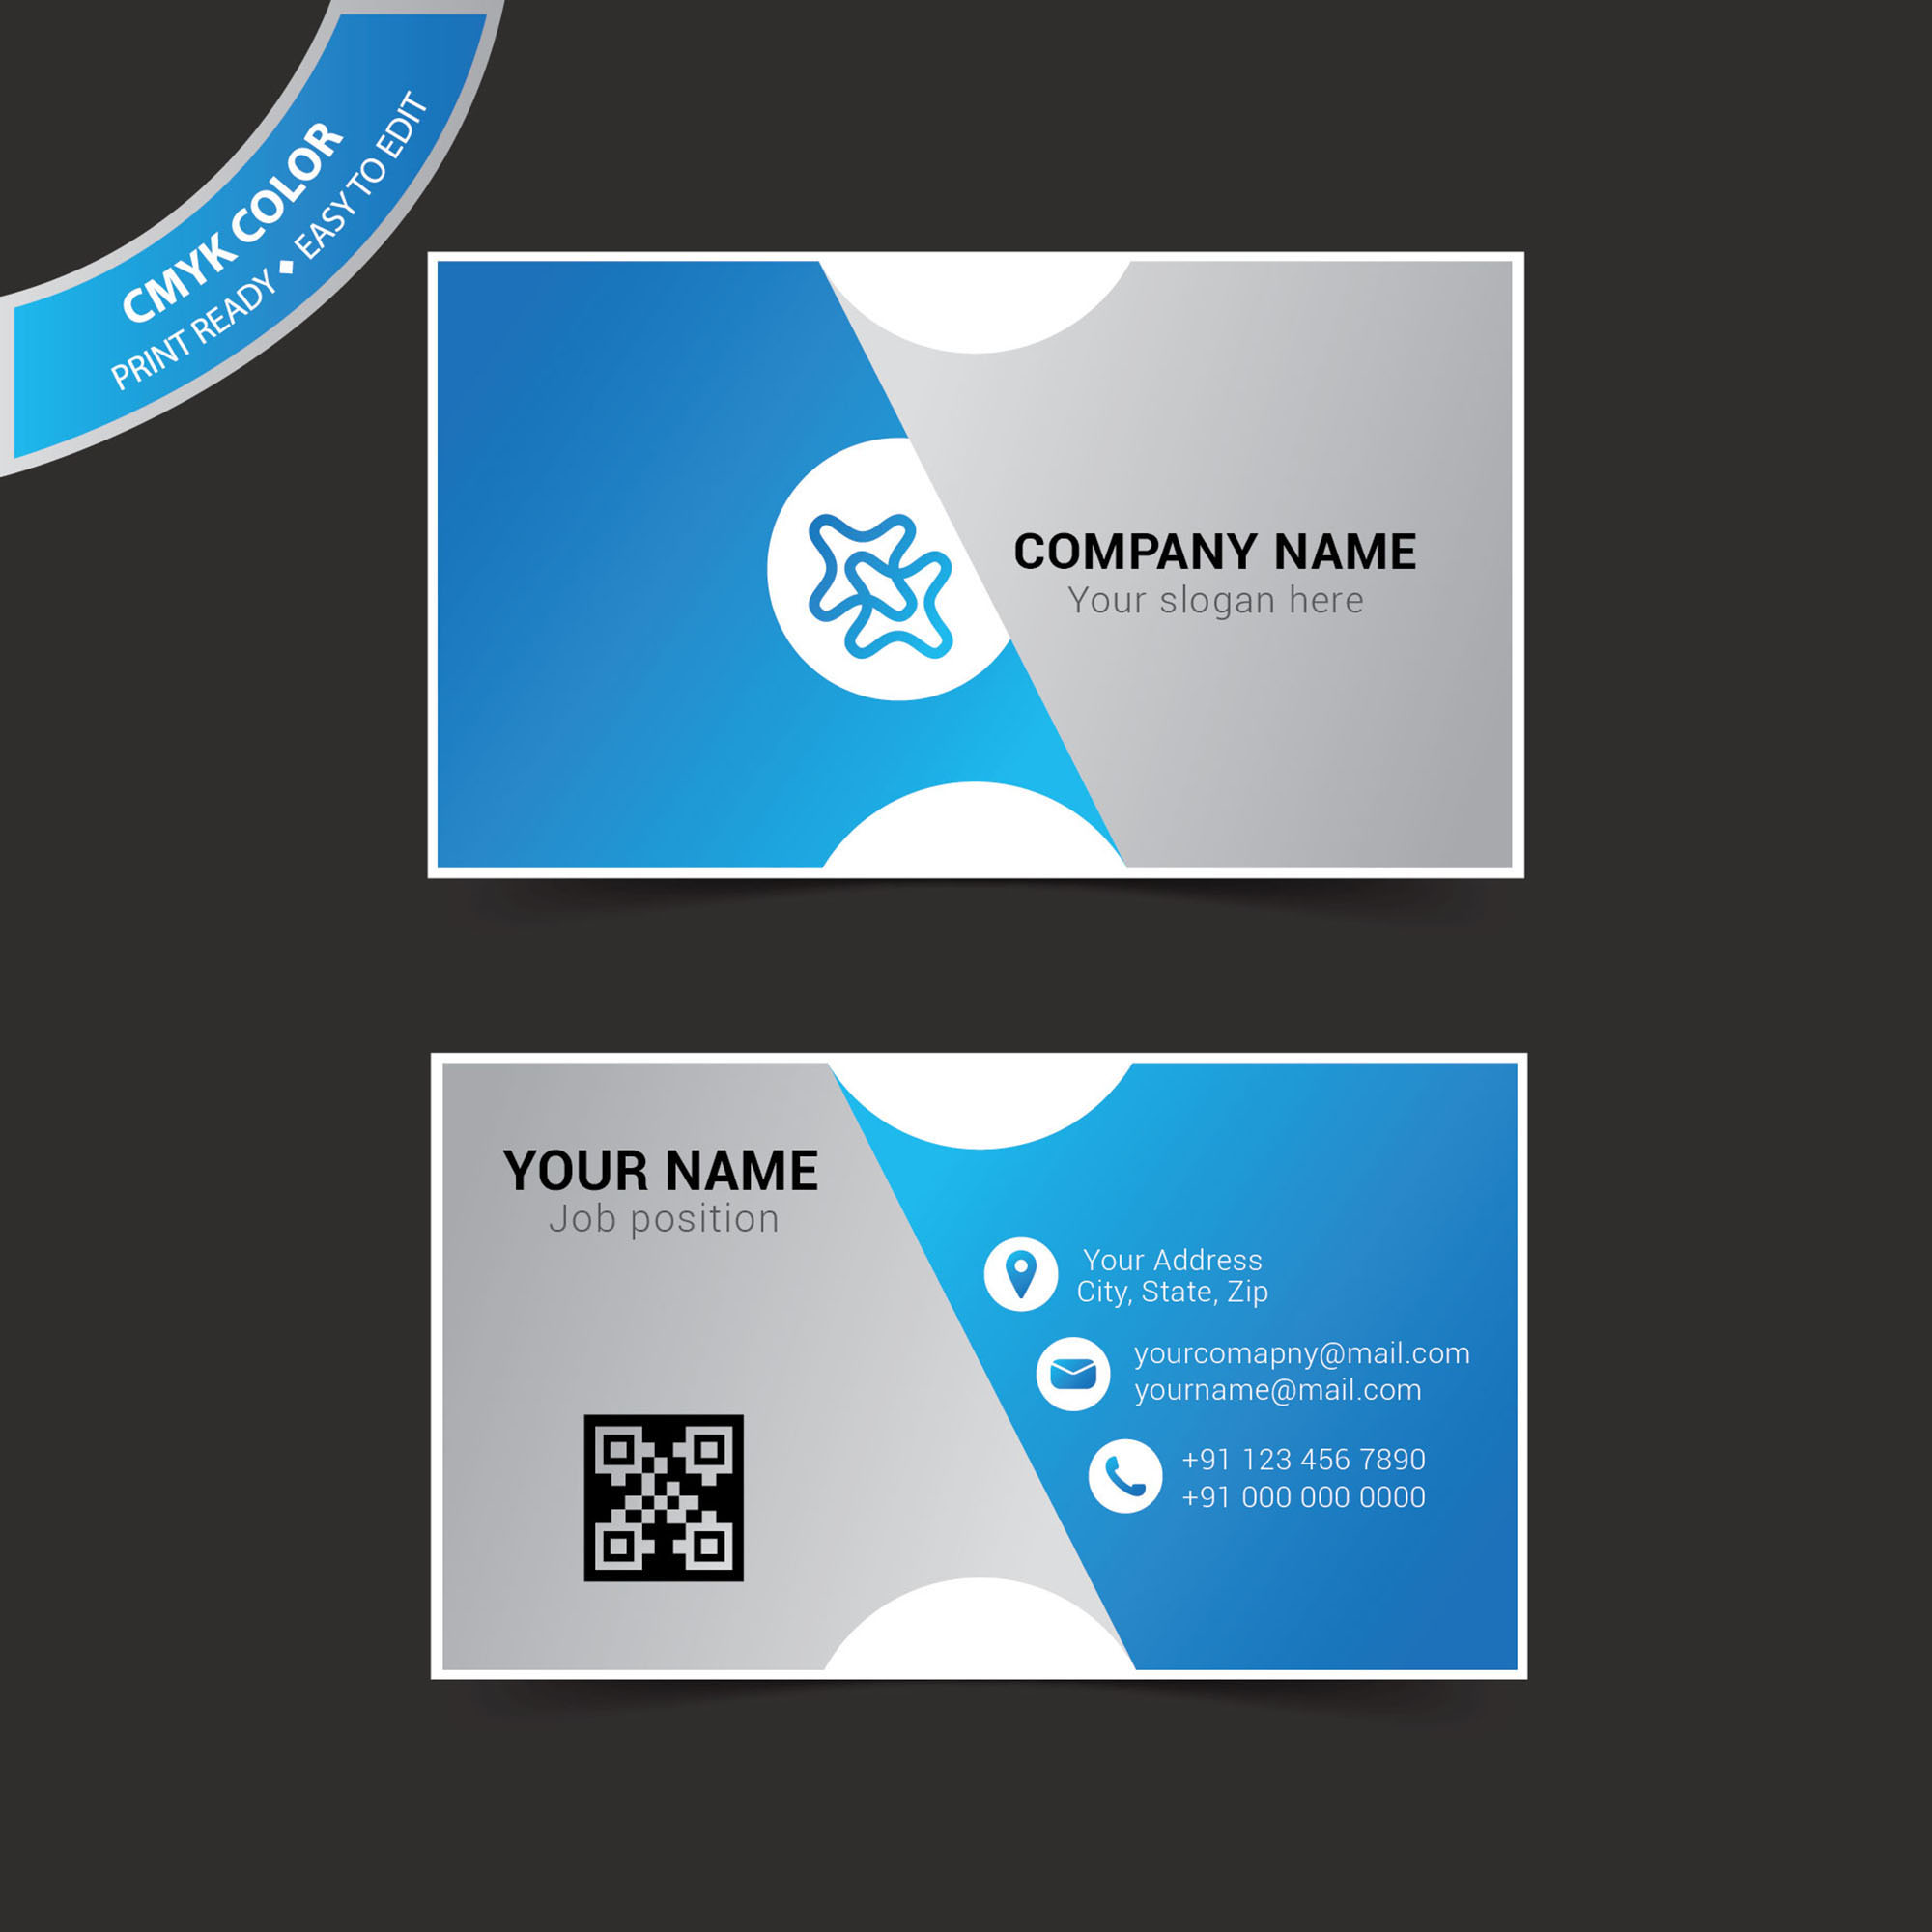 Business card template illustrator free vector wisxi abstract business card design business creative graphic layout template flashek Choice Image